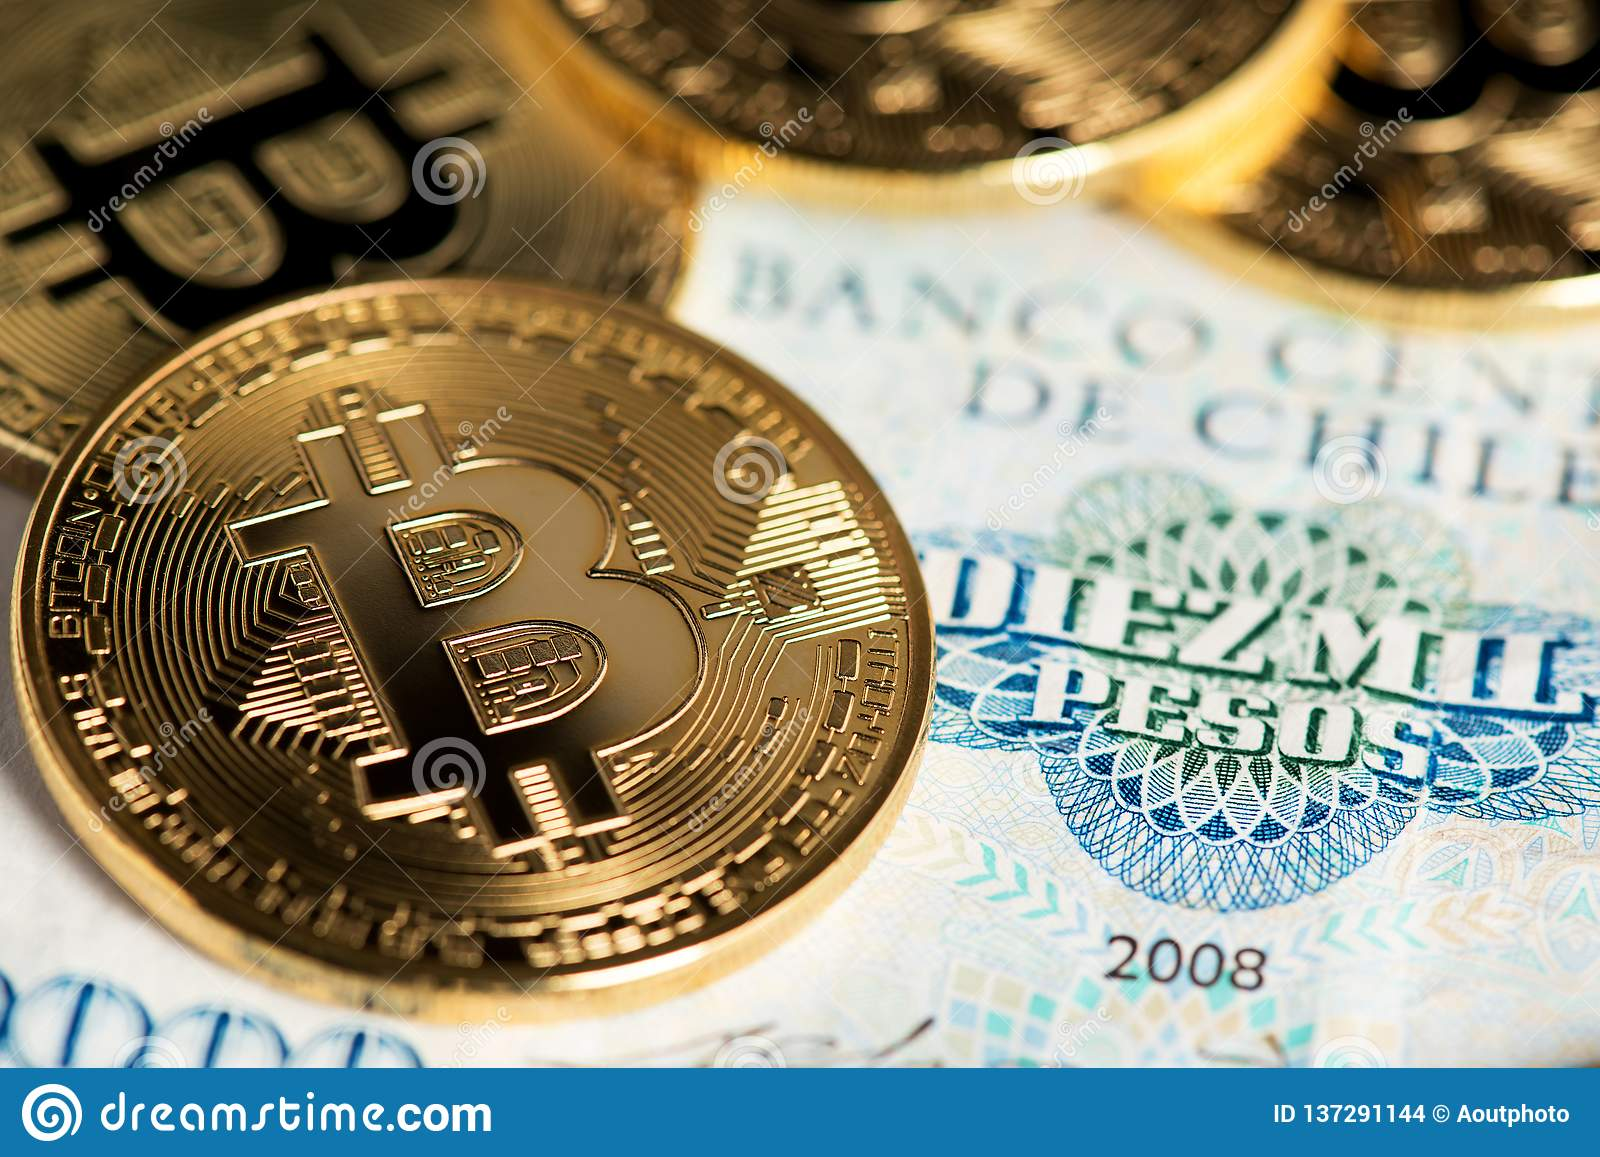 chile cryptocurrency exchange